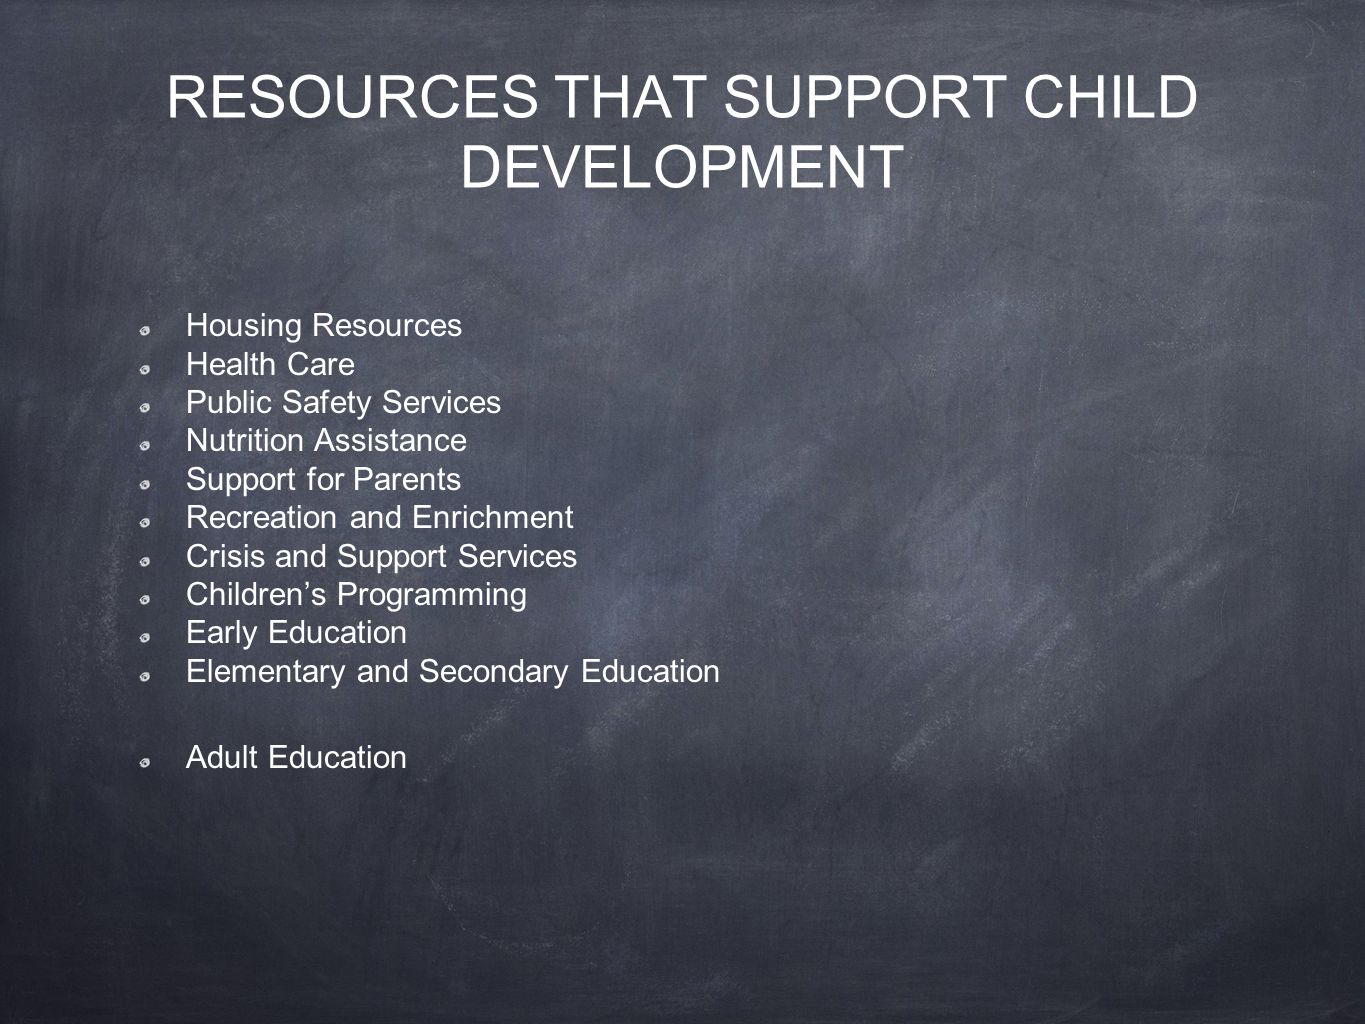 RESOURCES THAT SUPPORT CHILD DEVELOPMENT Housing Resources Health Care Public Safety Services Nutrition Assistance Support for Parents Recreation and Enrichment Crisis and Support Services Children's Programming Early Education Elementary and Secondary Education Adult Education